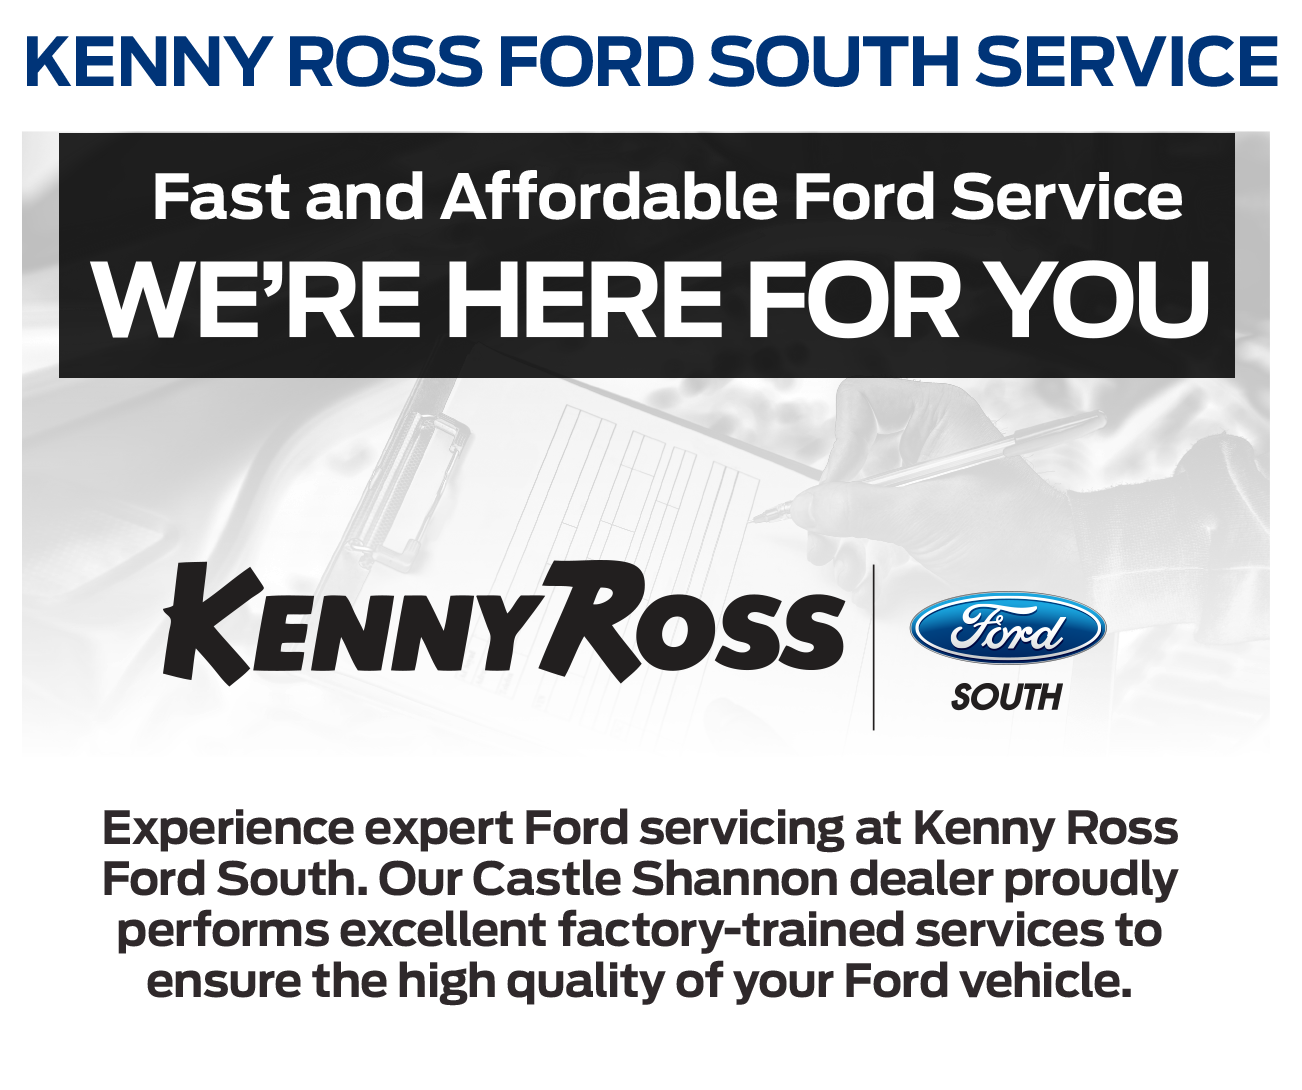 Ford Service Center at Kenny Ross Ford South